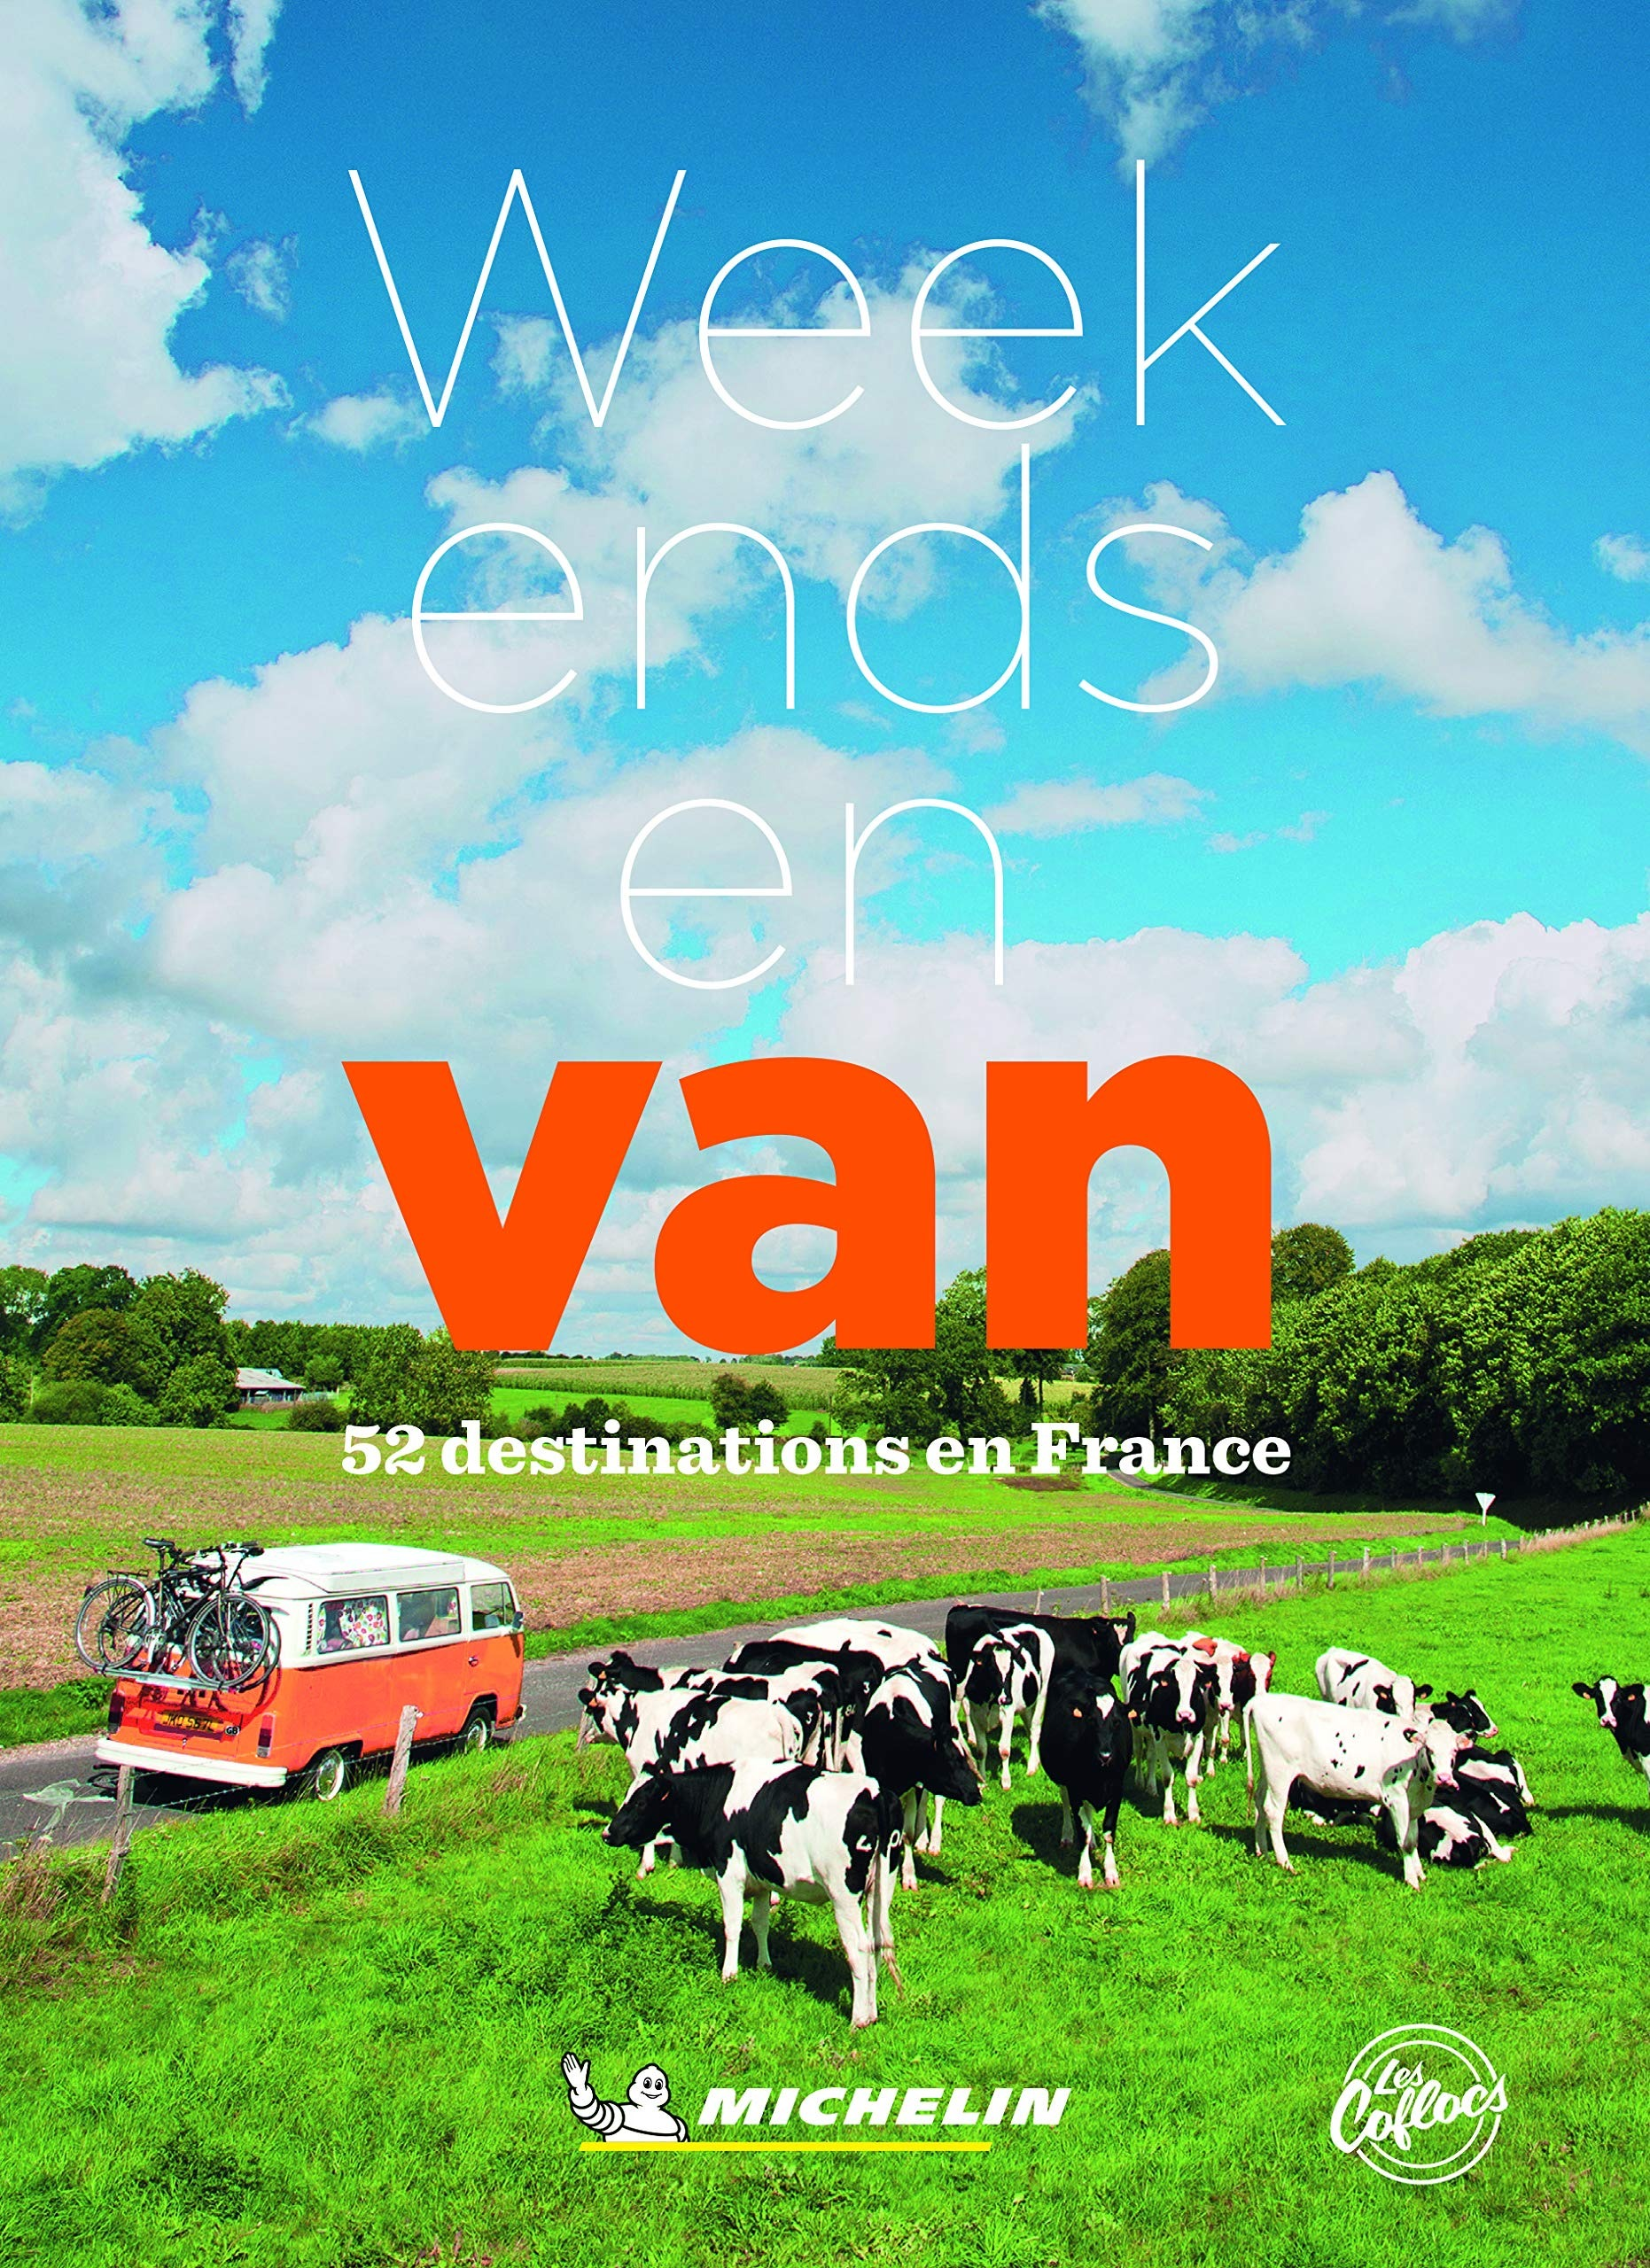 Guide Michelin : Week-Ends en Van, le guide de France pour la vanlife !